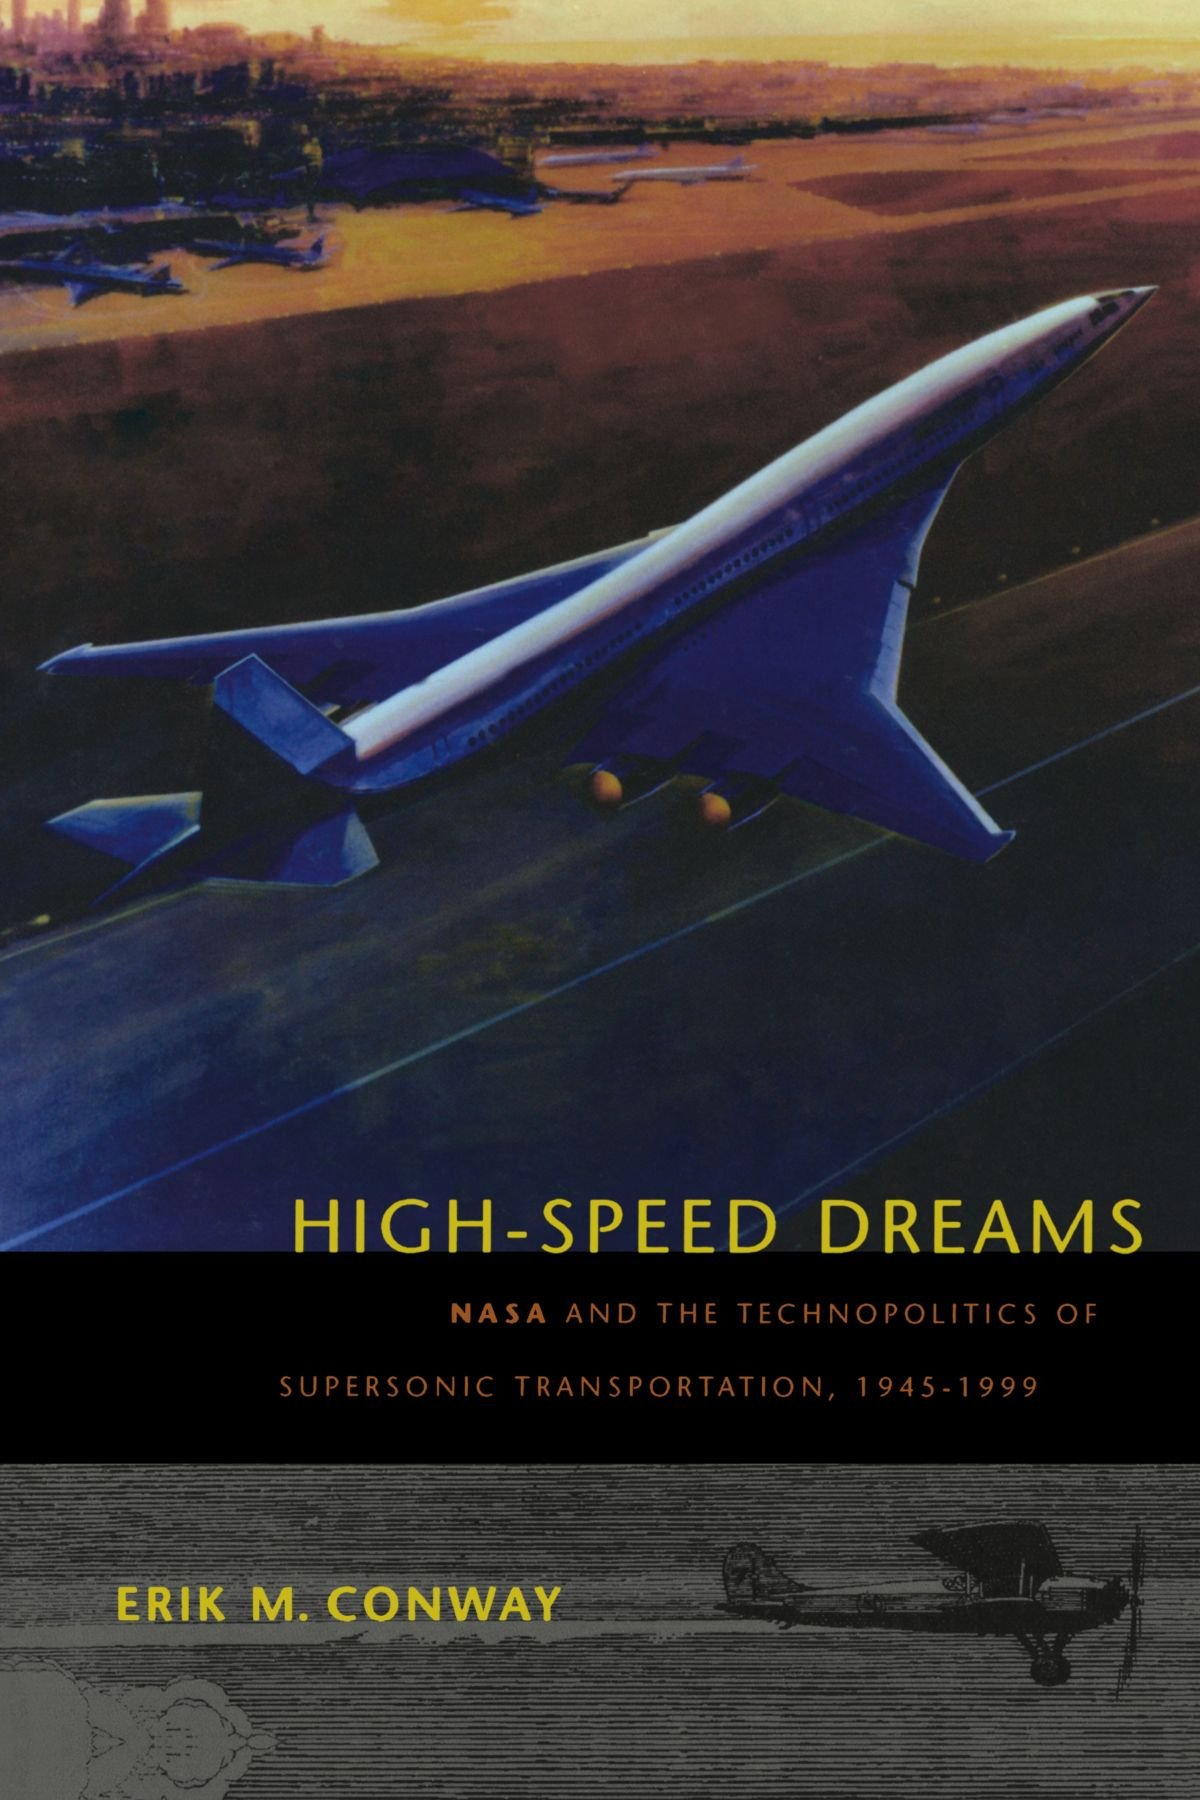 Download High-Speed Dreams: NASA and the Technopolitics of Supersonic Transportation, 1945–1999 (New Series in NASA History) PDF